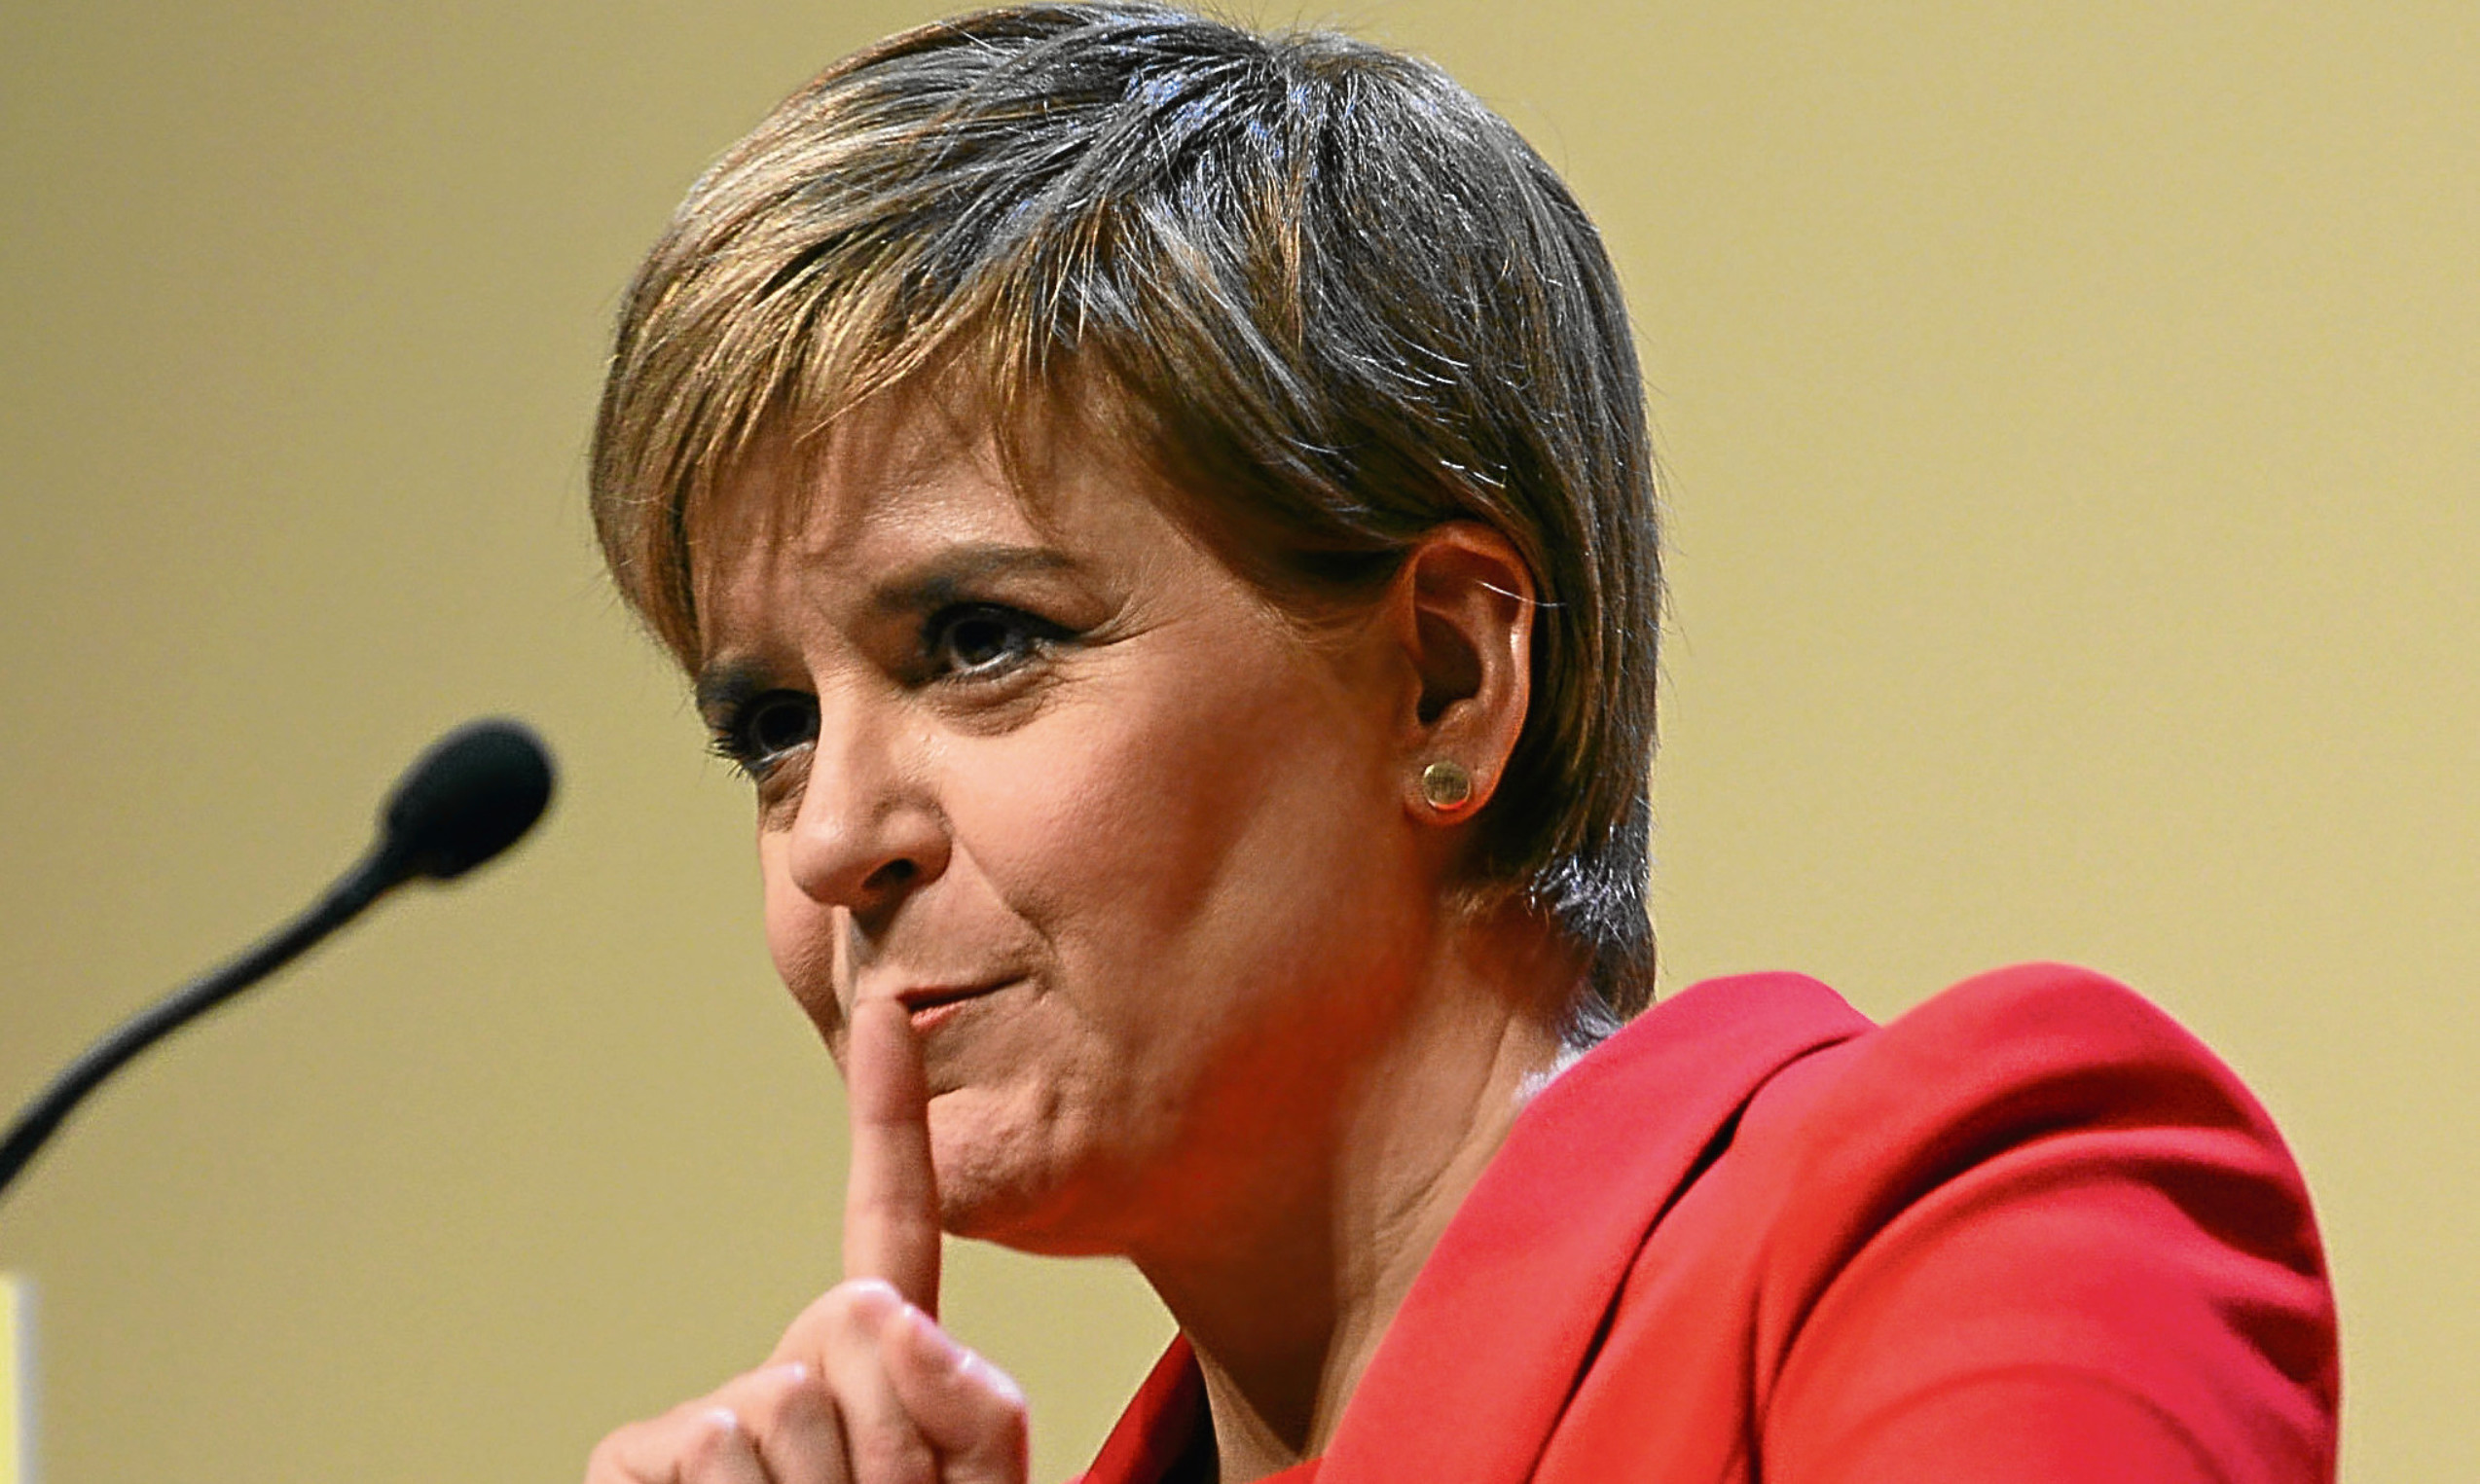 Nicola Sturgeon is to break her silence on her plans for a second independence referendum.